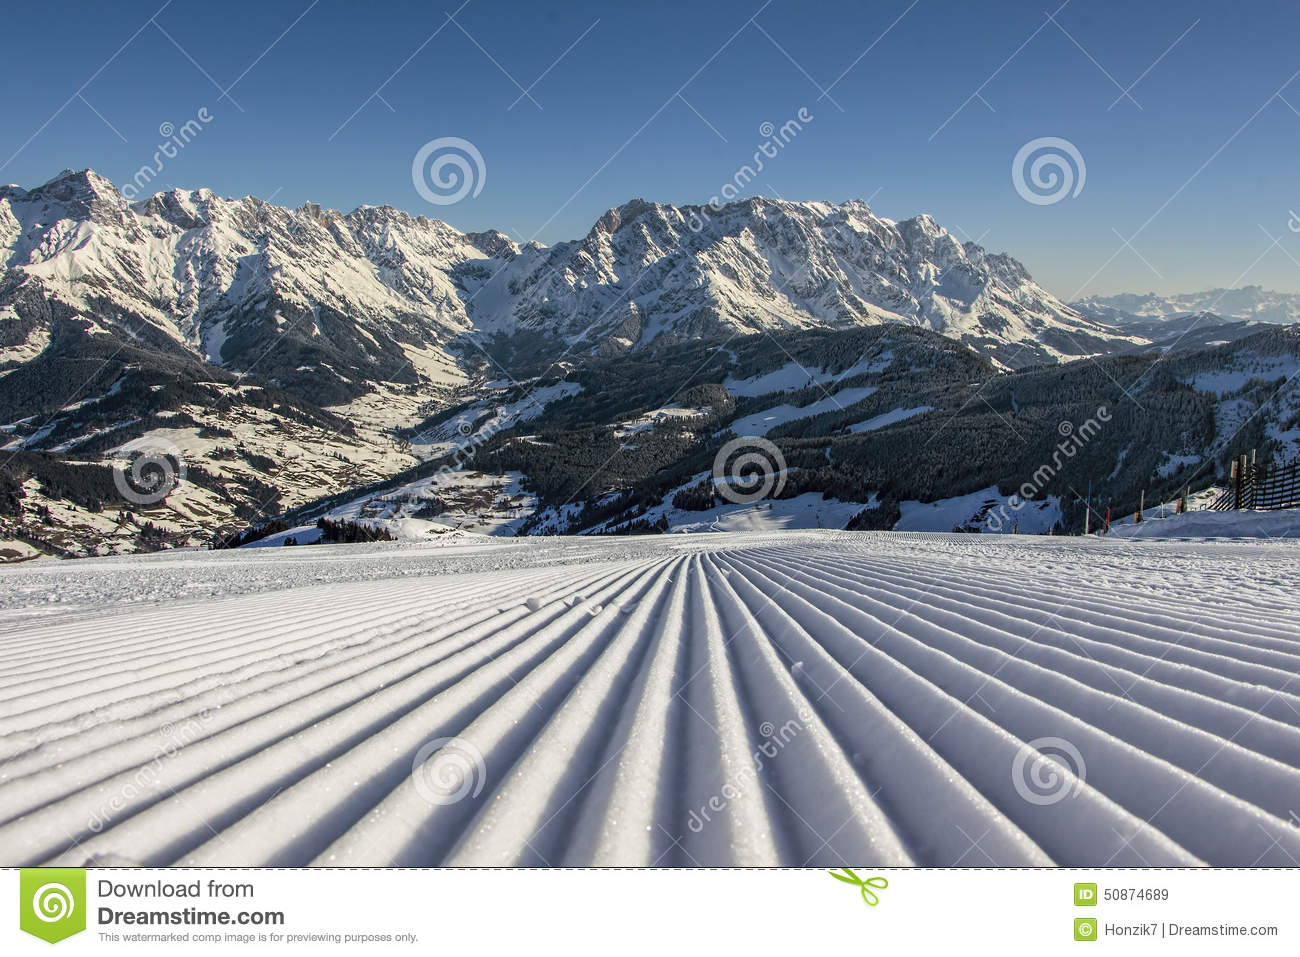 Perfect ski vacation on perfect slopes